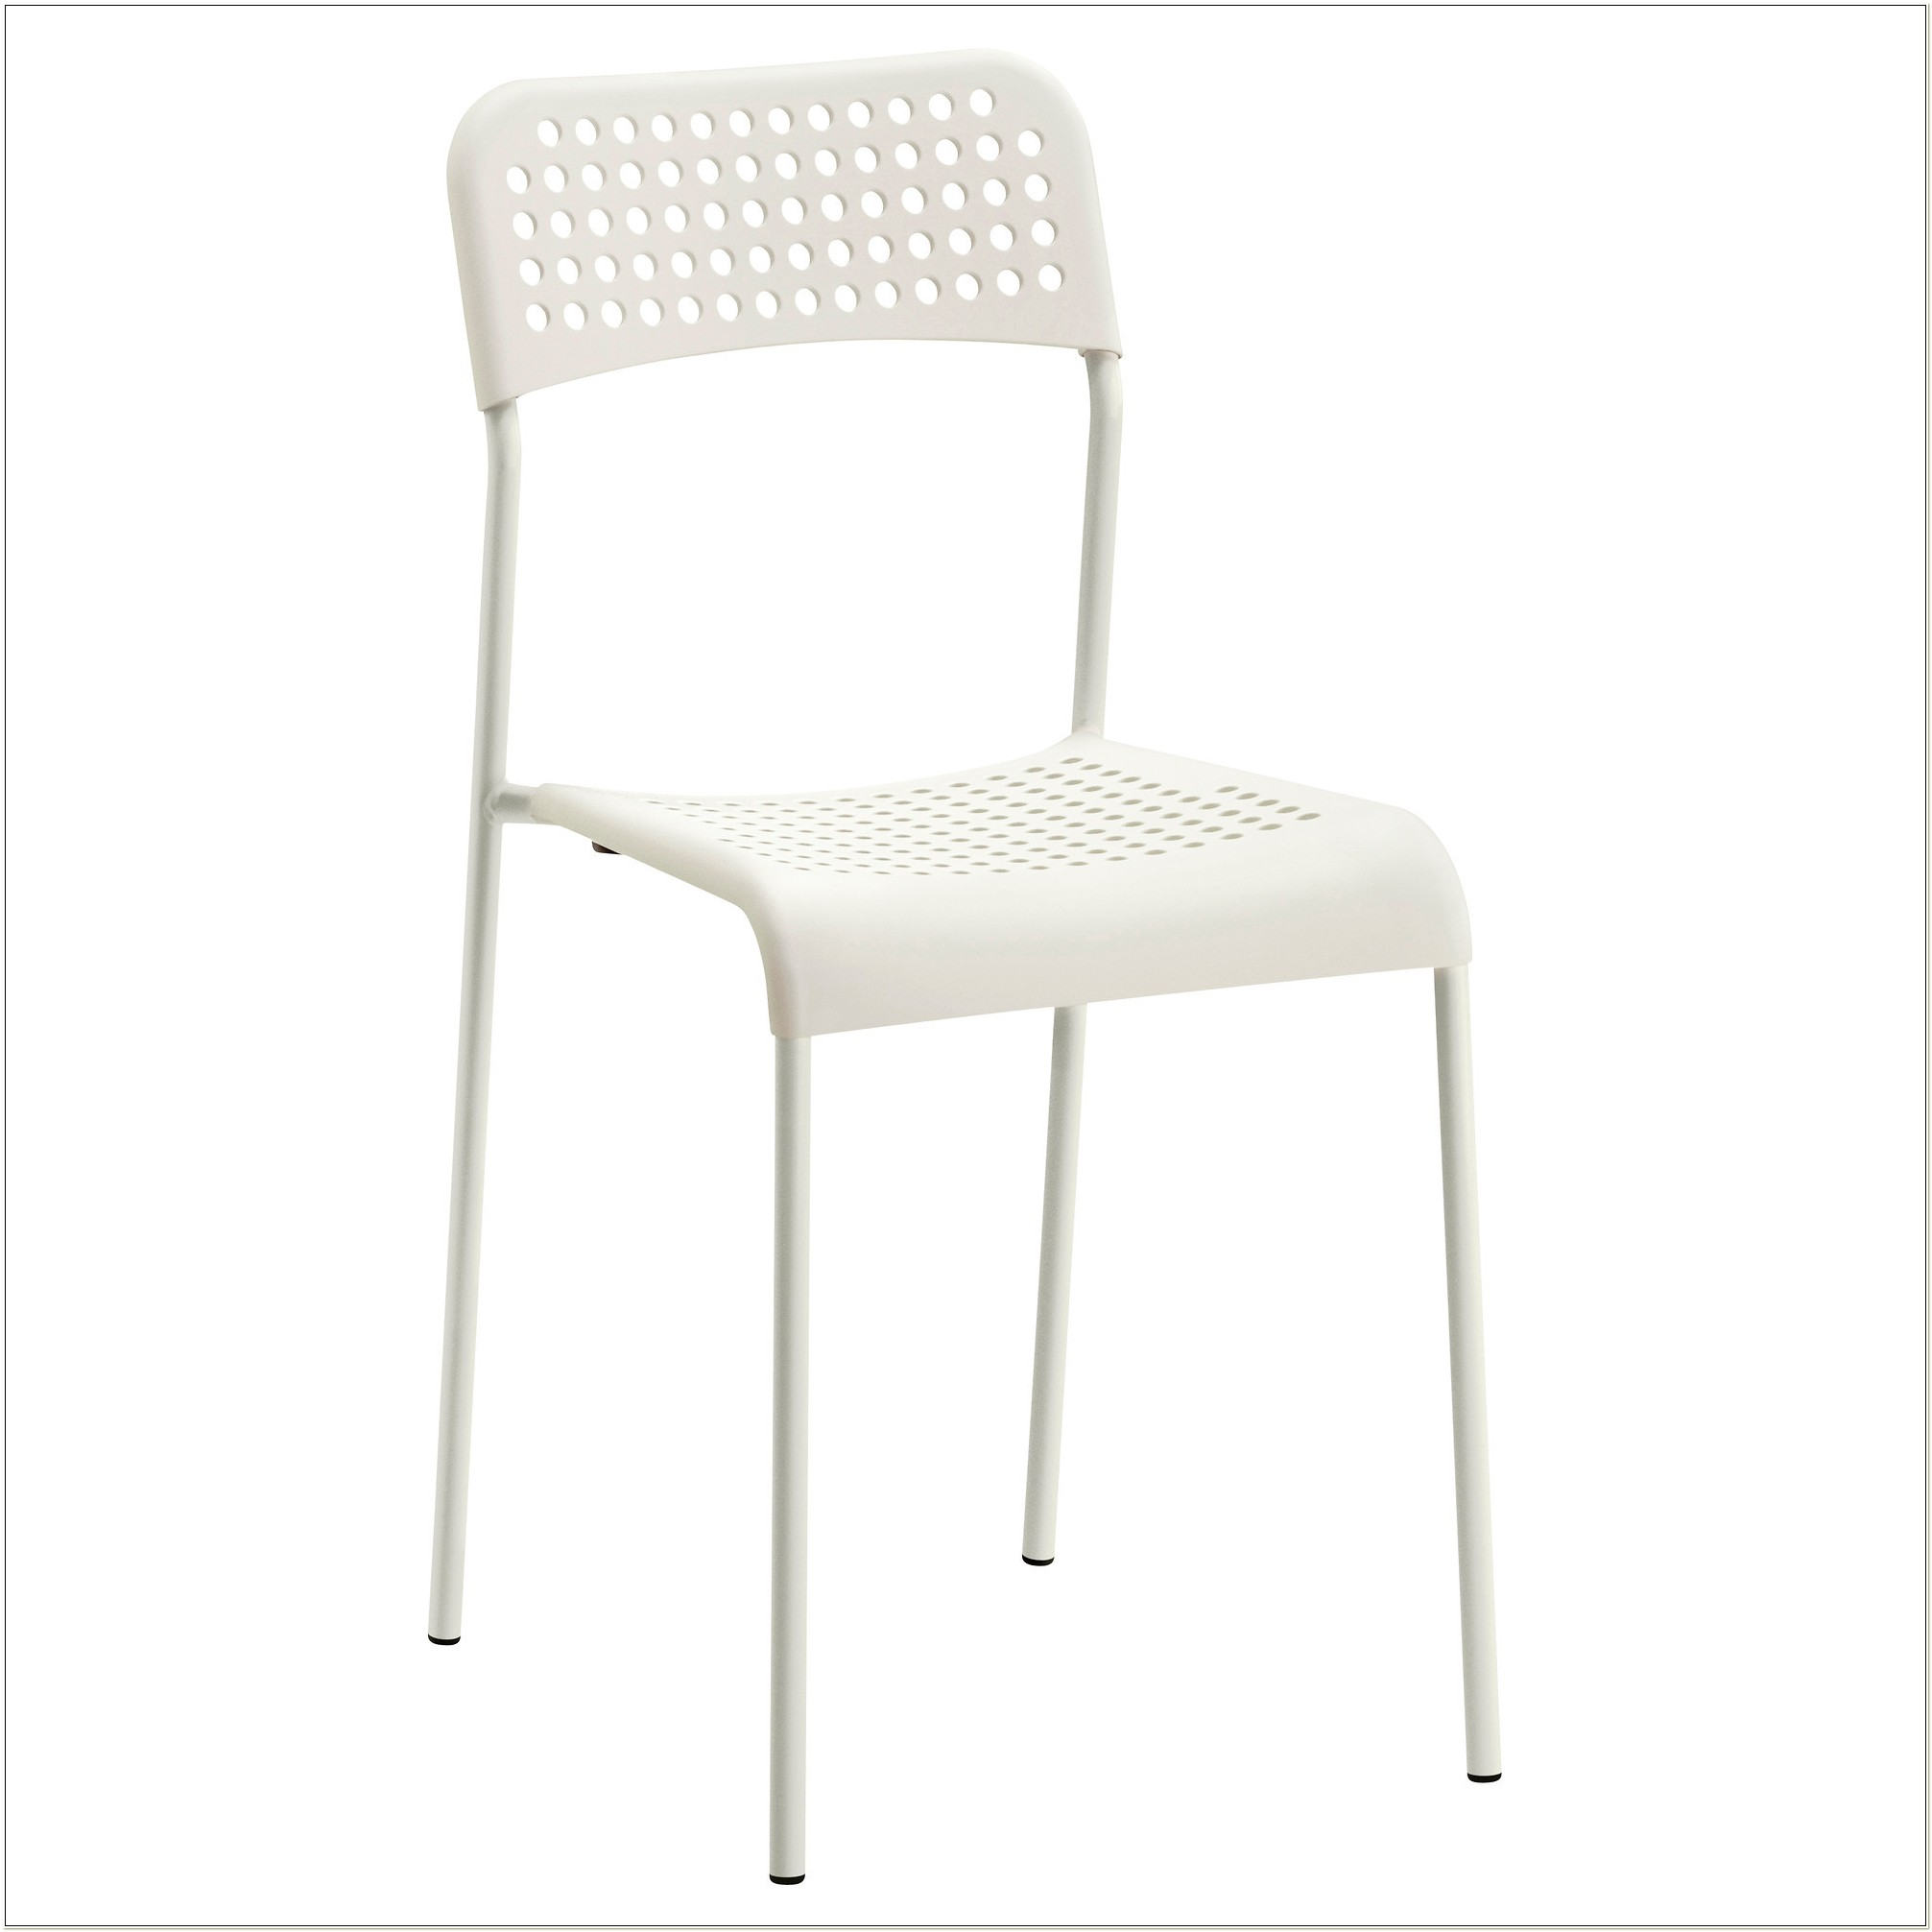 Plastic Dining Chairs Ikea